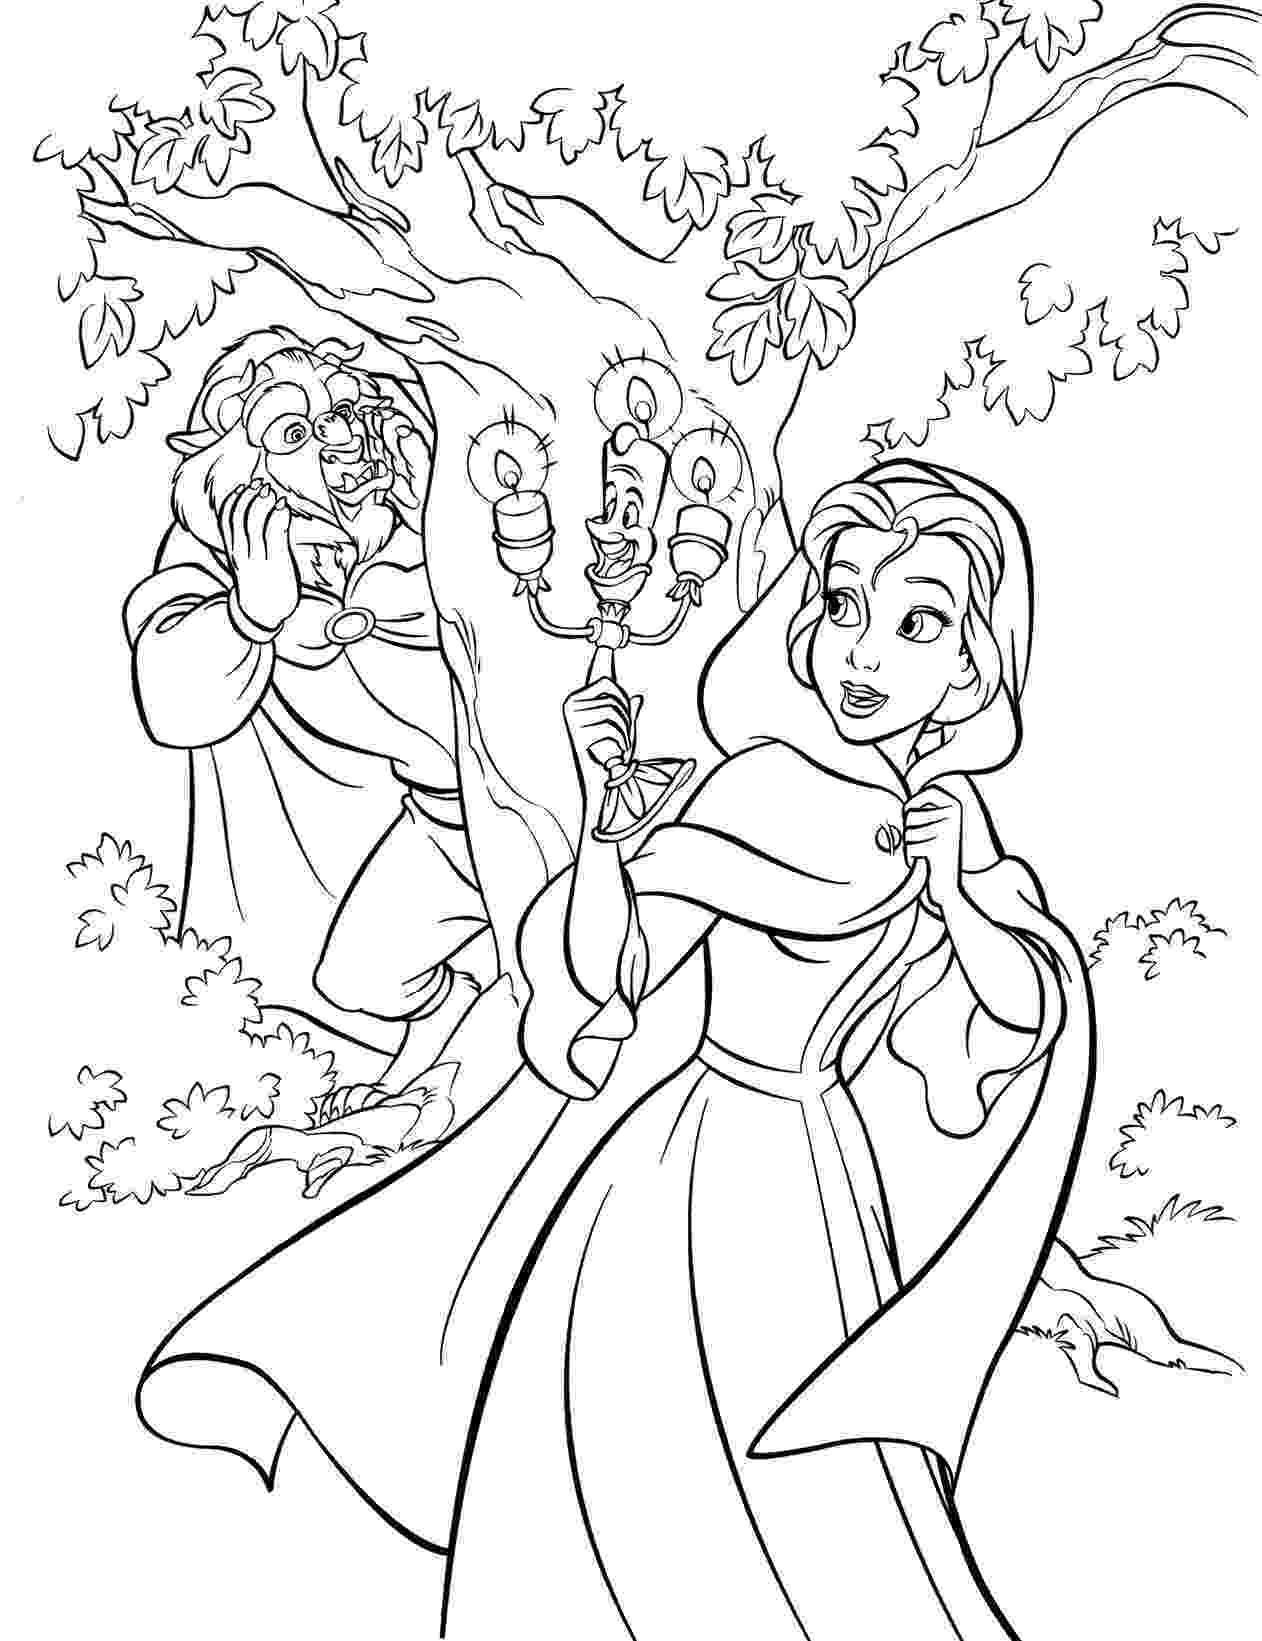 coloring pages for beauty and the beast walt disney pictures cute kawaii resources page 2 beauty and coloring for pages the beast